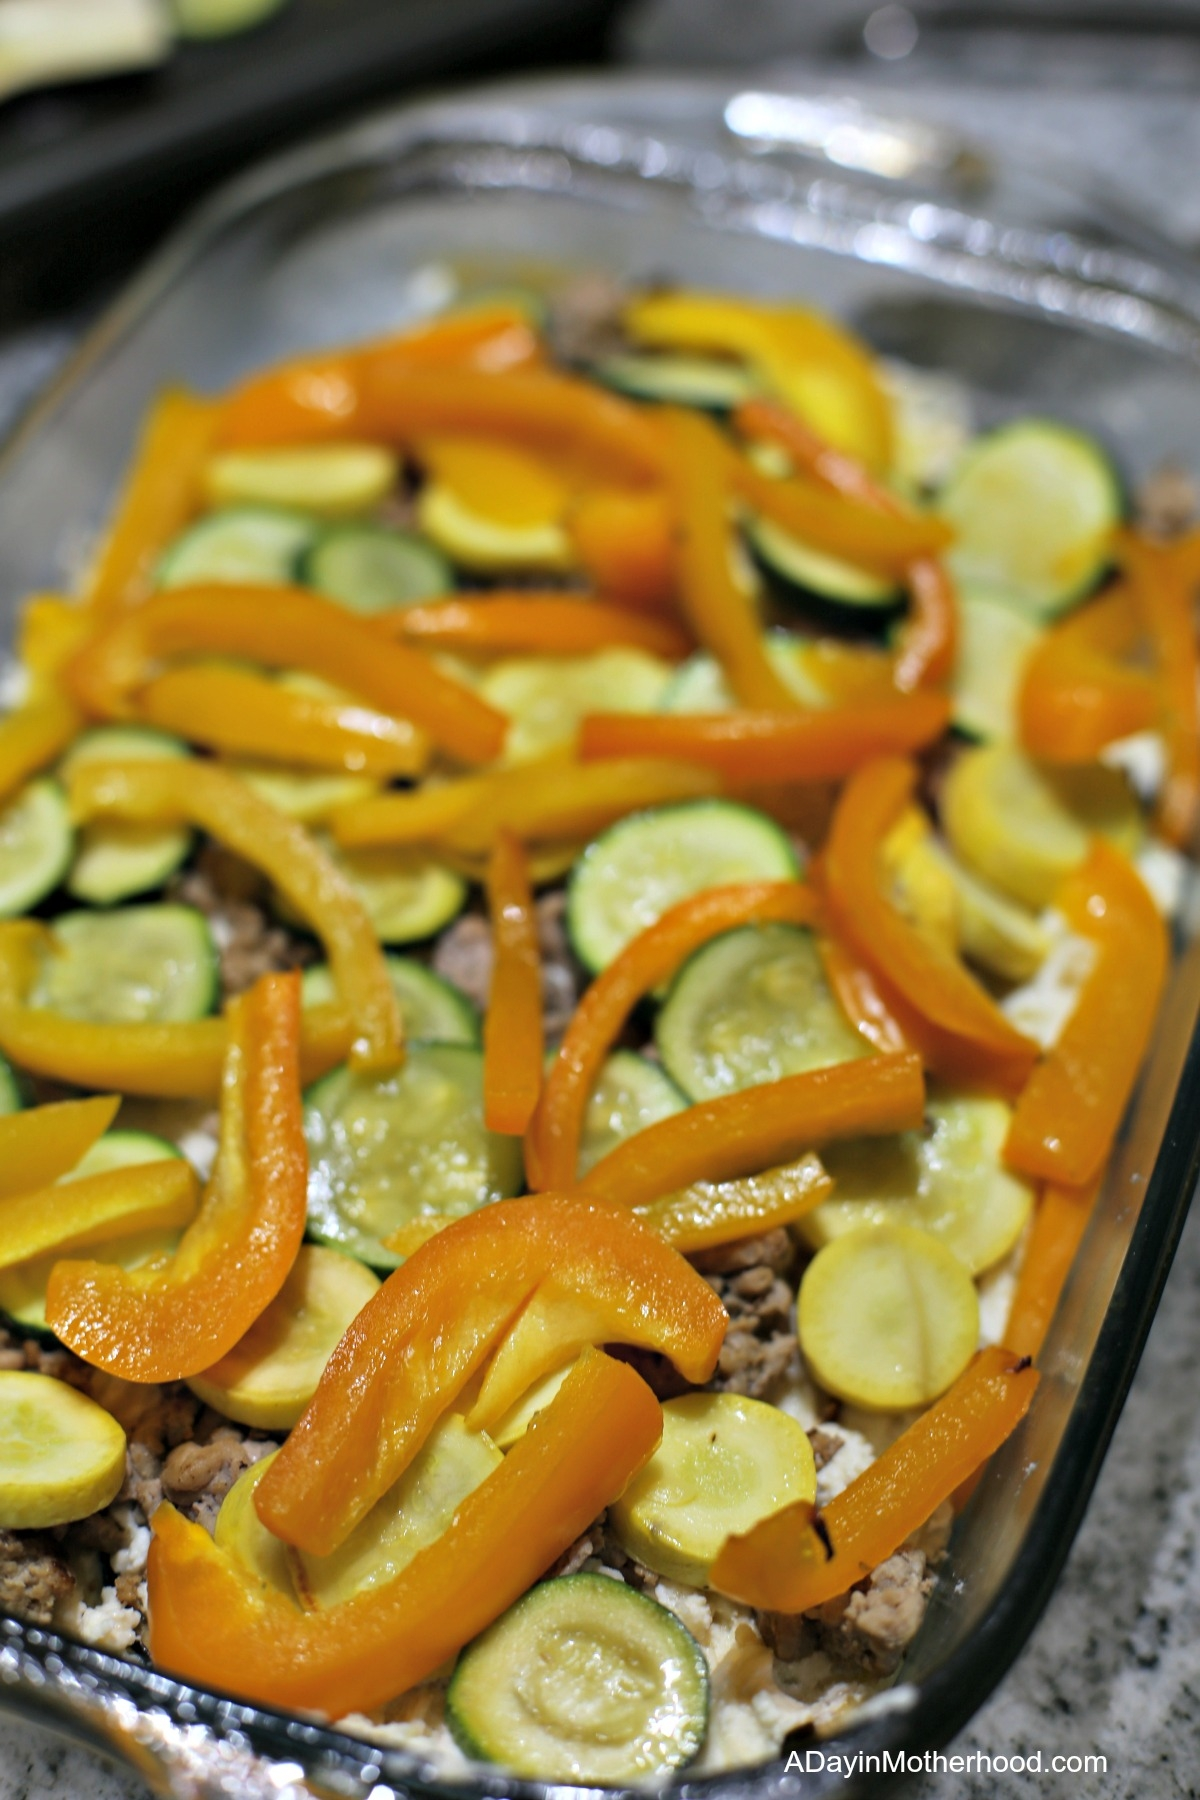 Turkey Vegetable Ricotta Bake Recipe with peppers